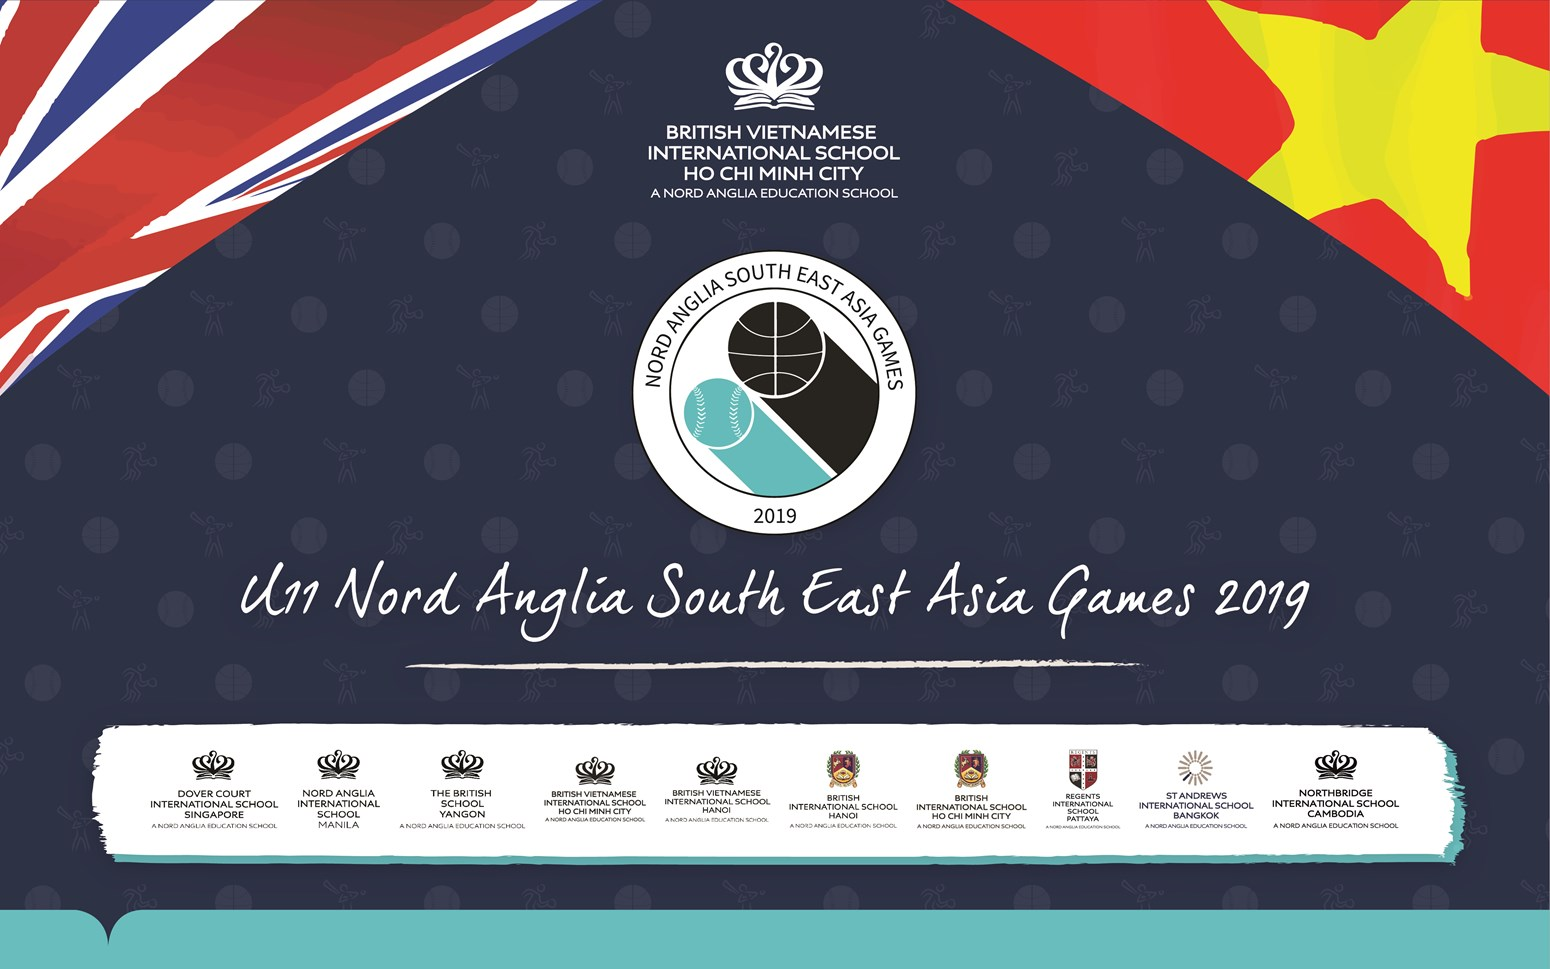 BVIS HCMC U11 Nord Anglia South East Asia Games 2019